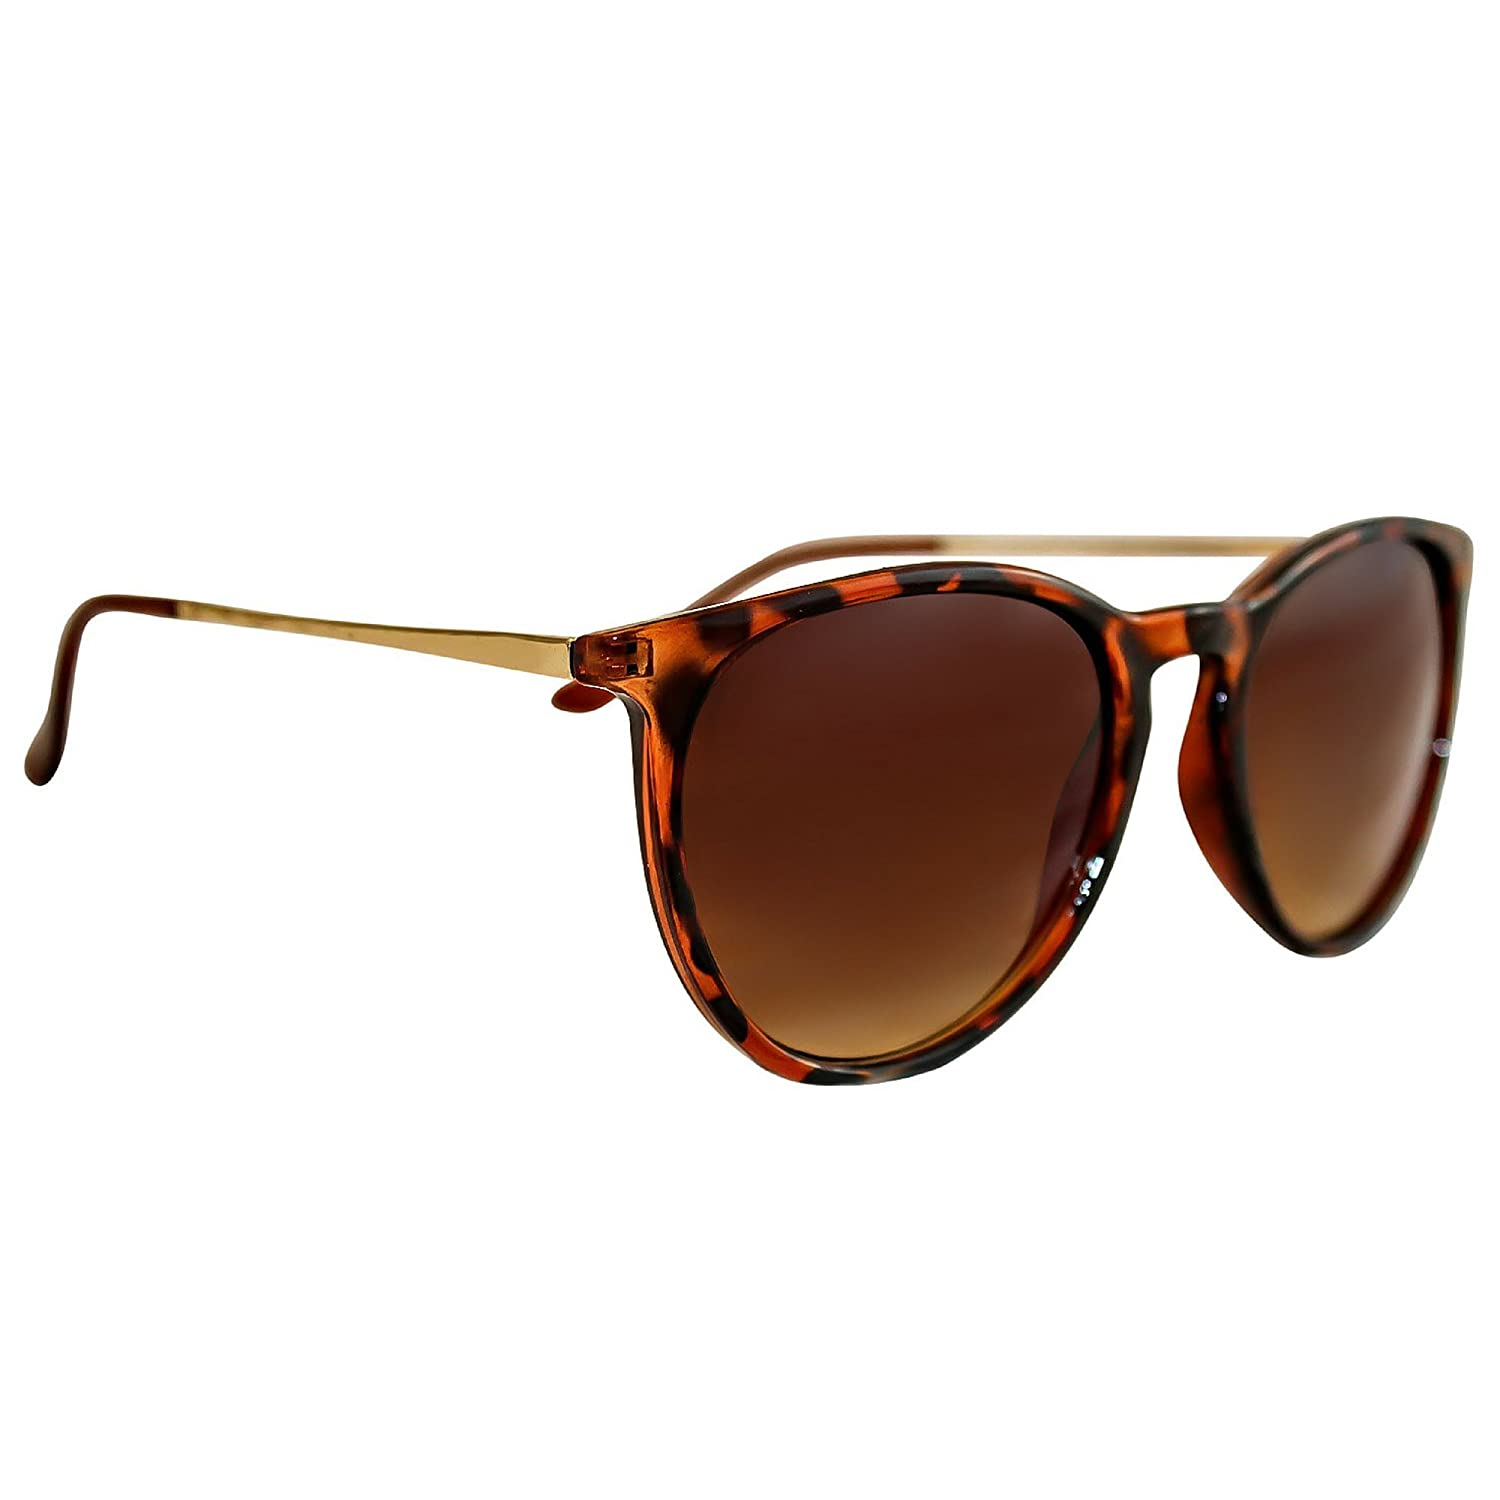 6d754239af1 Polarized Sunglasses for Women by Eye Love w UV Protection   Designer Style